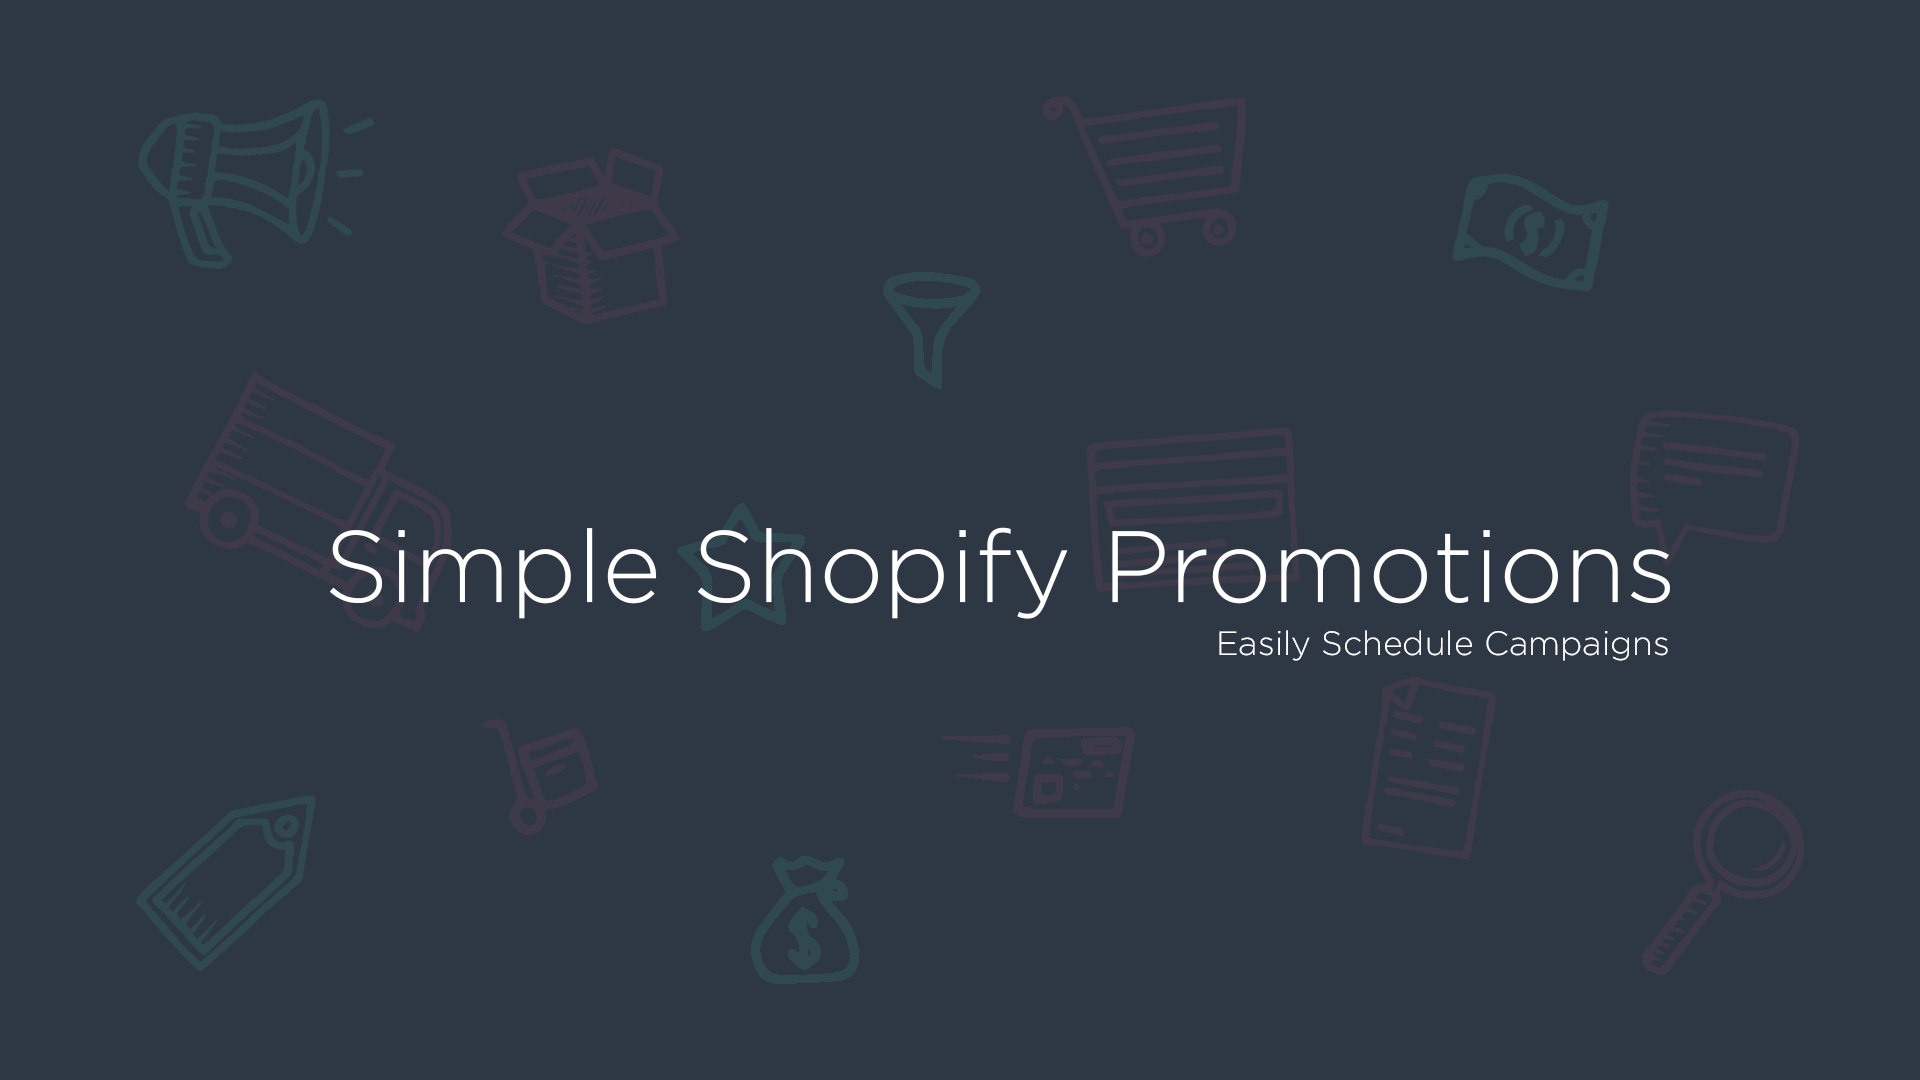 simple_shopify_promotions.png